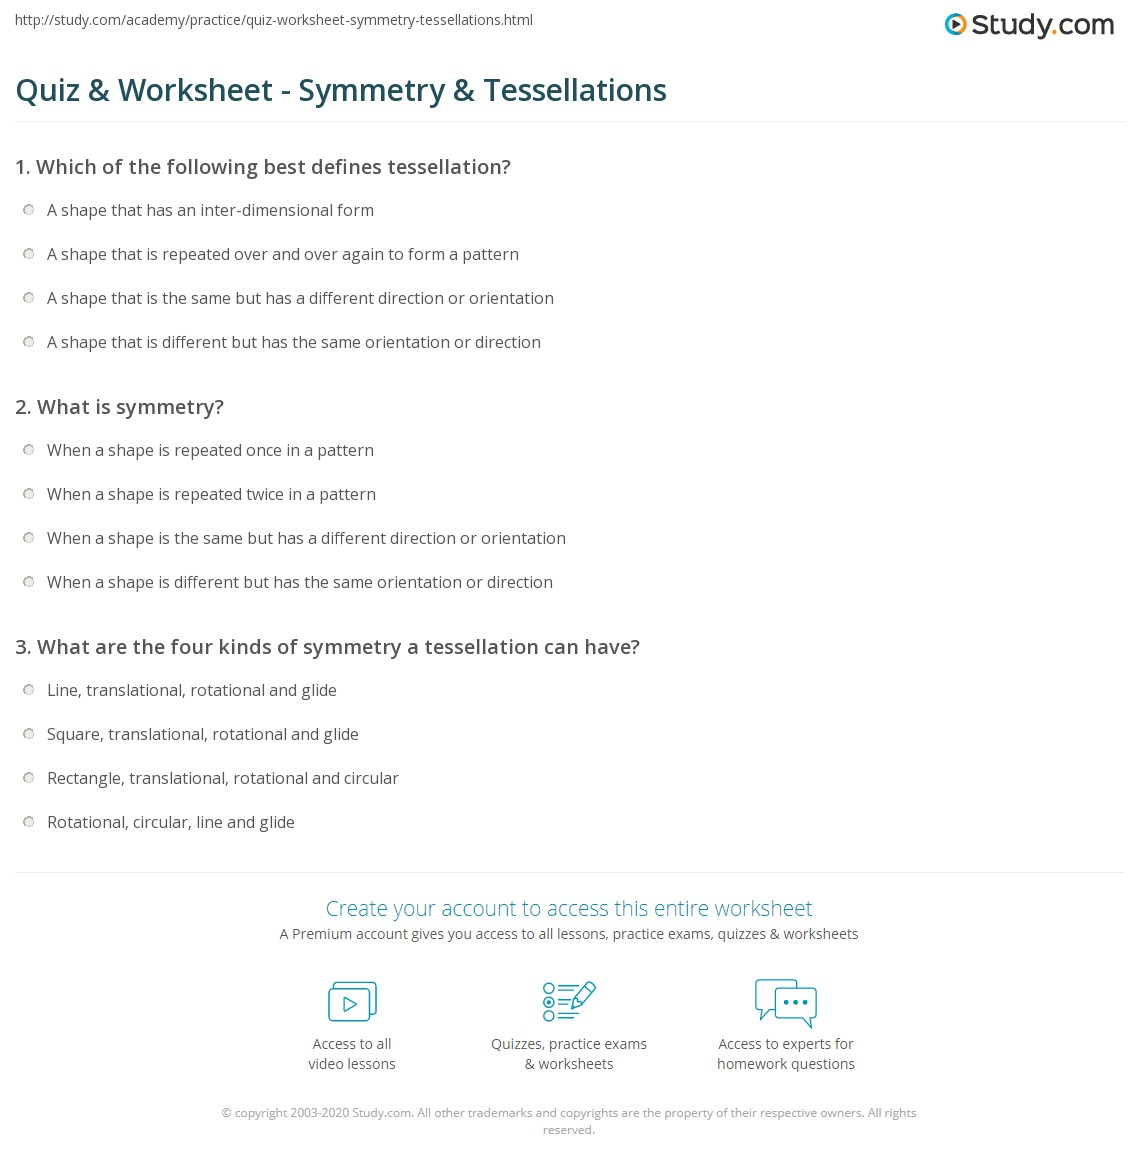 Worksheets Tessellations Worksheet quiz worksheet symmetry tessellations study com print using to describe worksheet